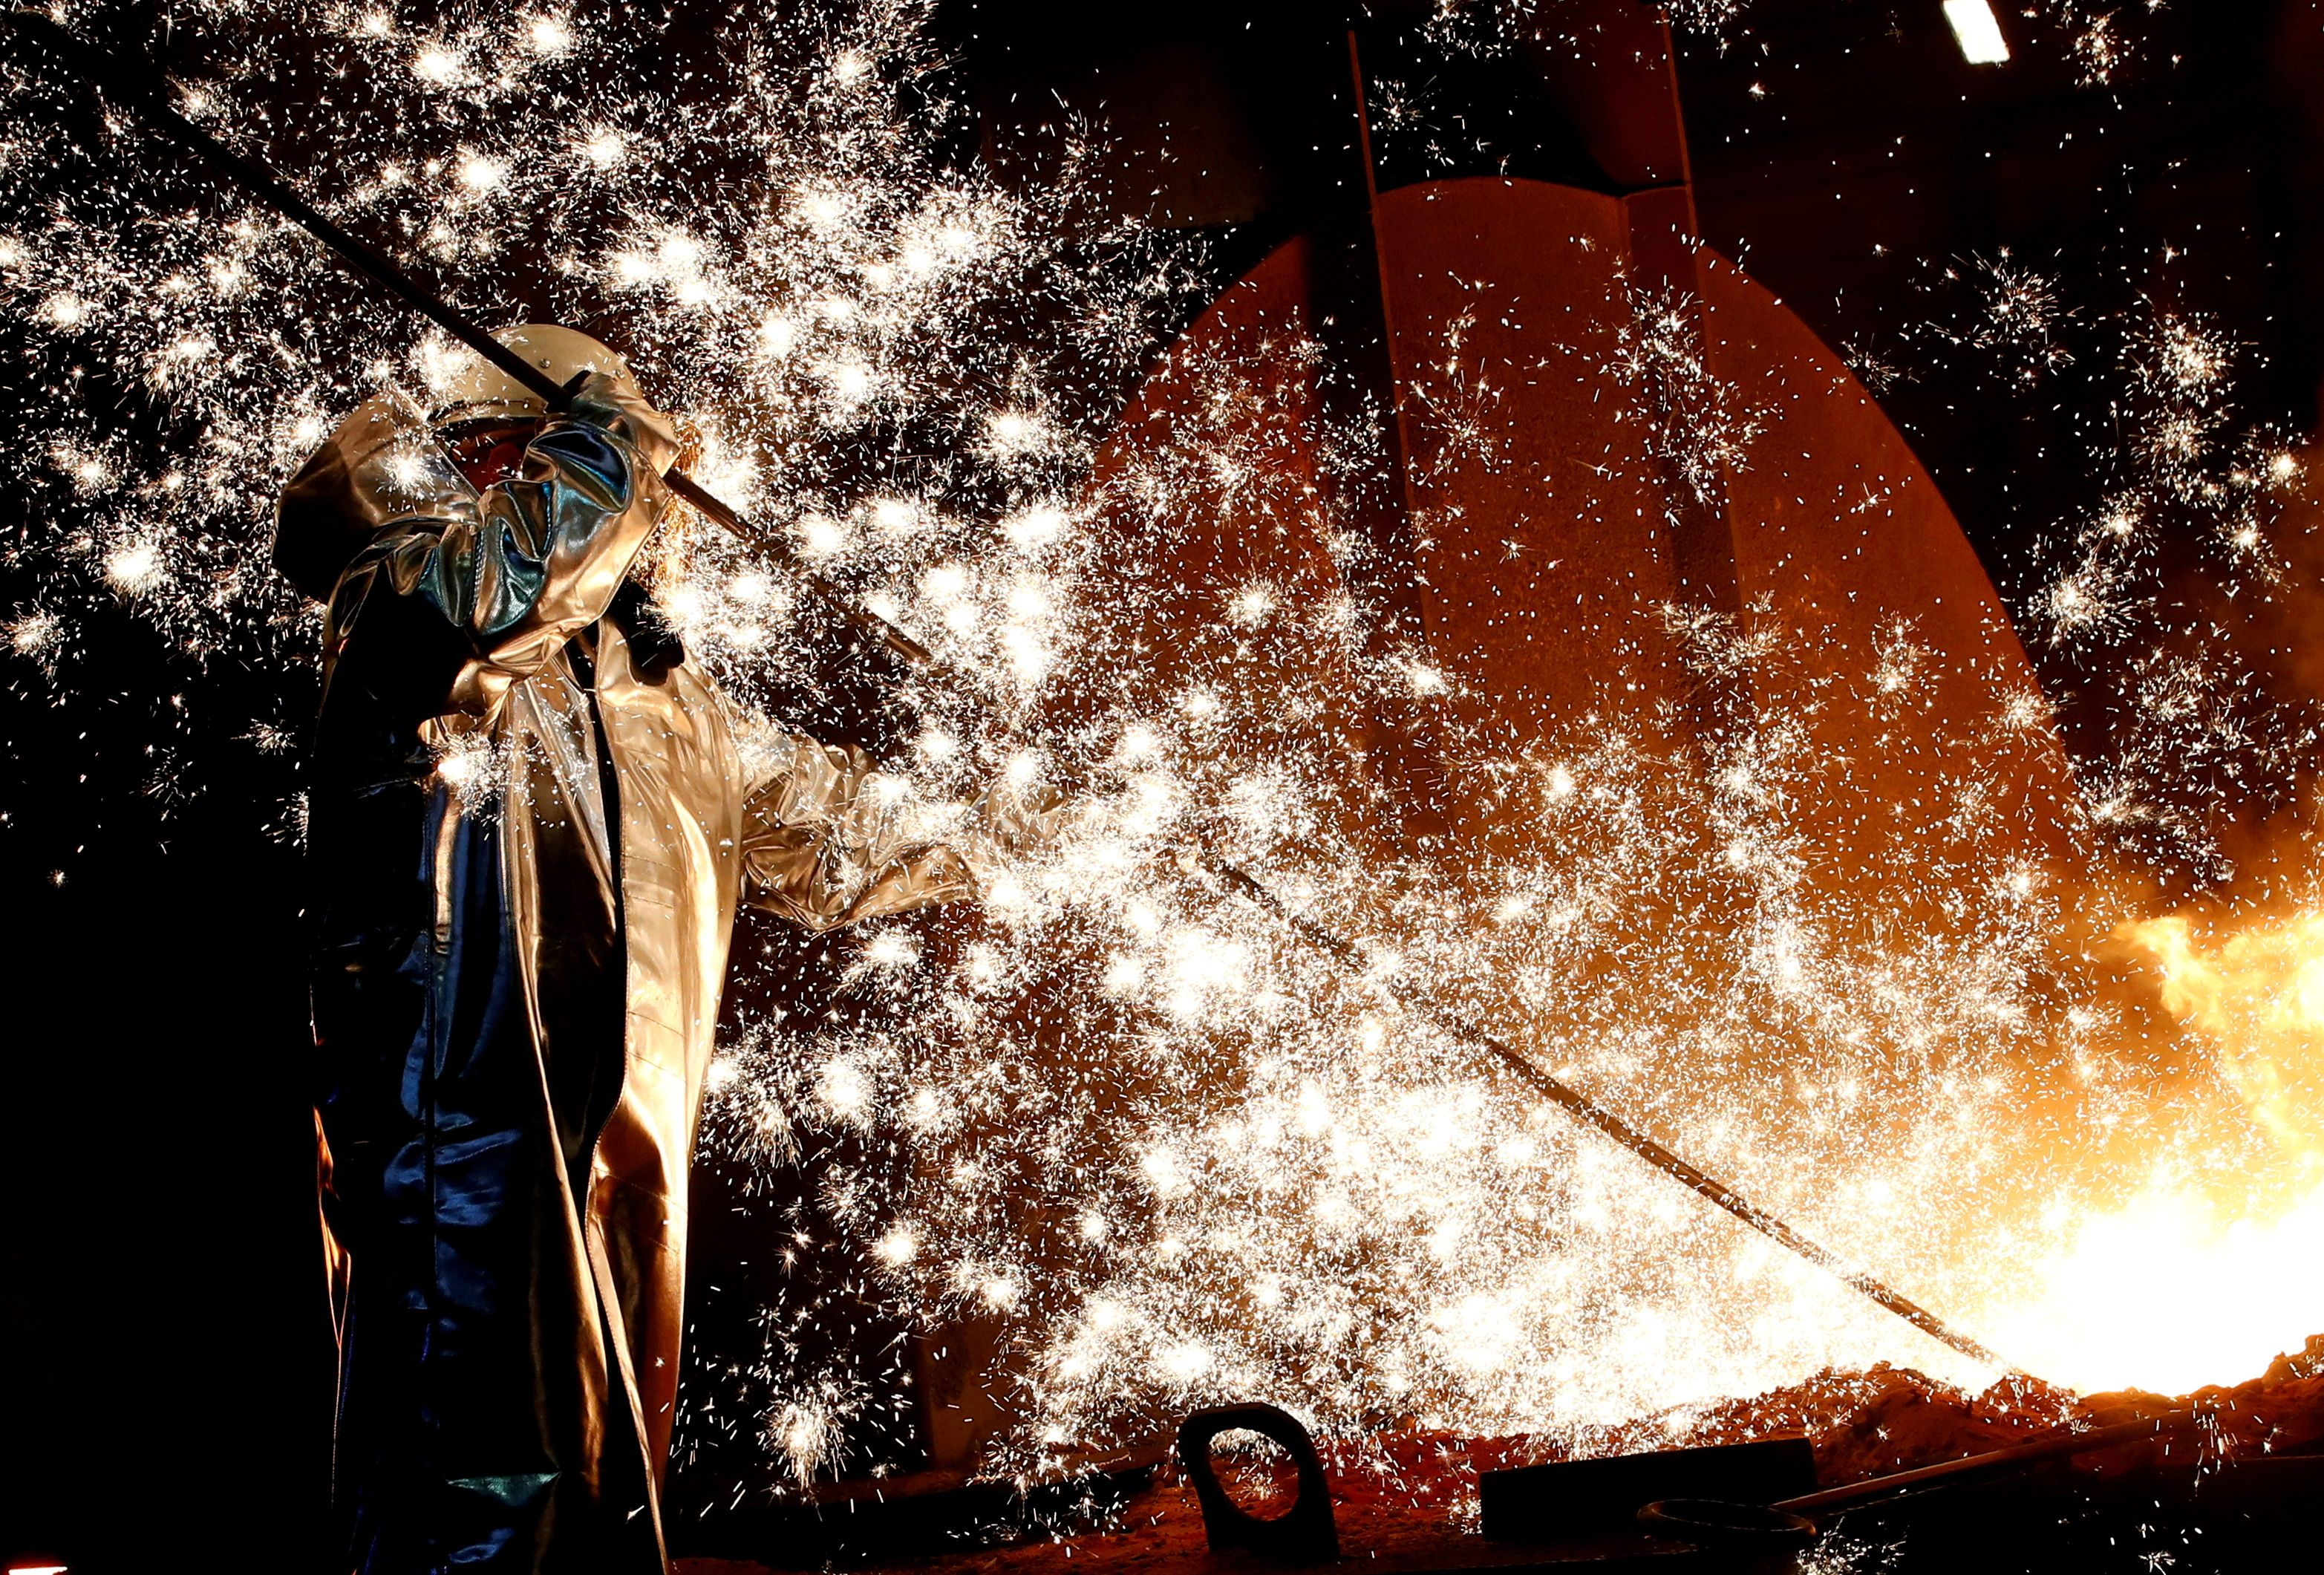 A steel worker of Germany's industrial conglomerate ThyssenKrupp AG stands a mid of emitting sparks of raw iron from a blast furnace at Germany's largest steel factory in Duisburg, Germany. REUTERS/Wolfgang Rattay